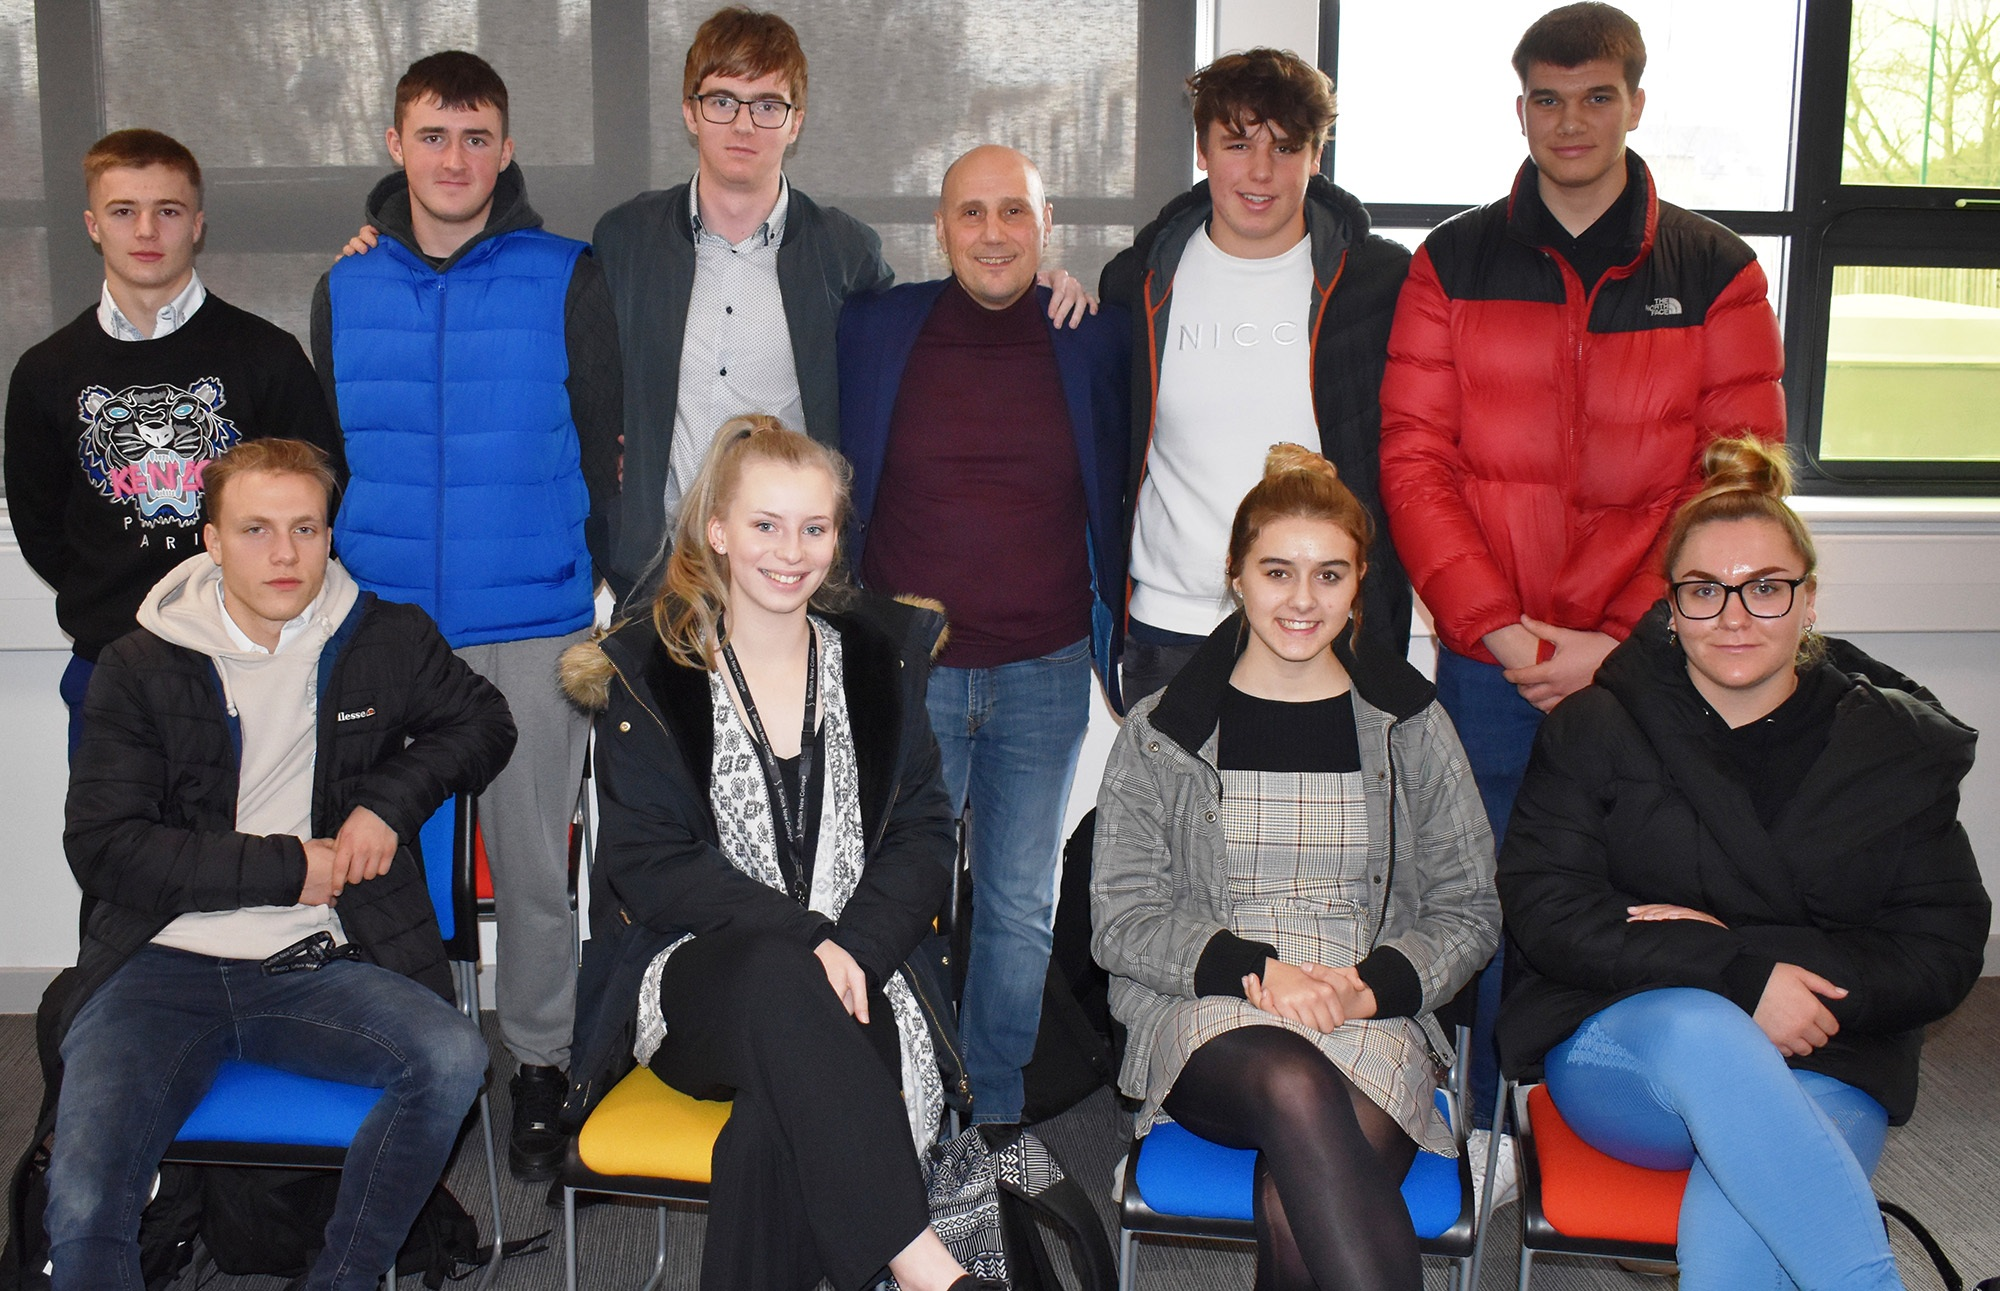 Suffolk New College students hoping to be part of the SportsSkills4Business project. Photo: JOHN NICE